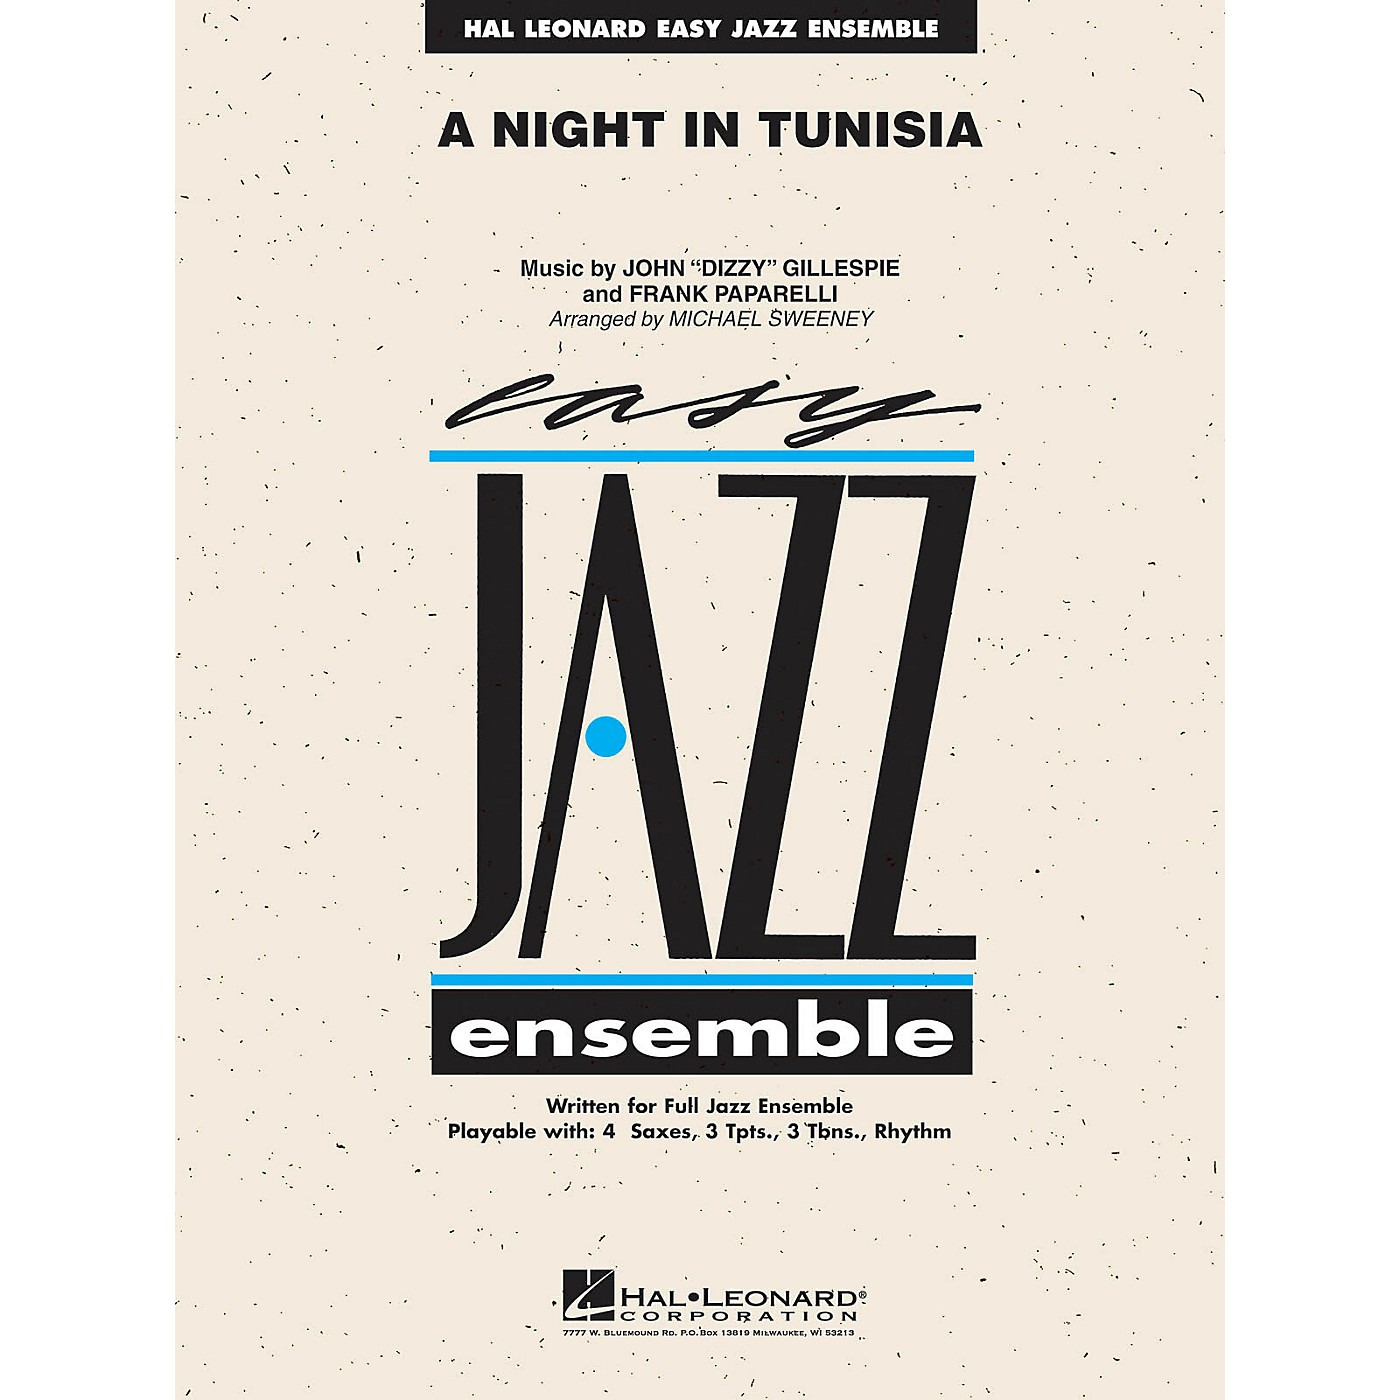 Hal Leonard A Night in Tunisia Jazz Band Level 2 by Dizzy Gillespie Arranged by Michael Sweeney thumbnail